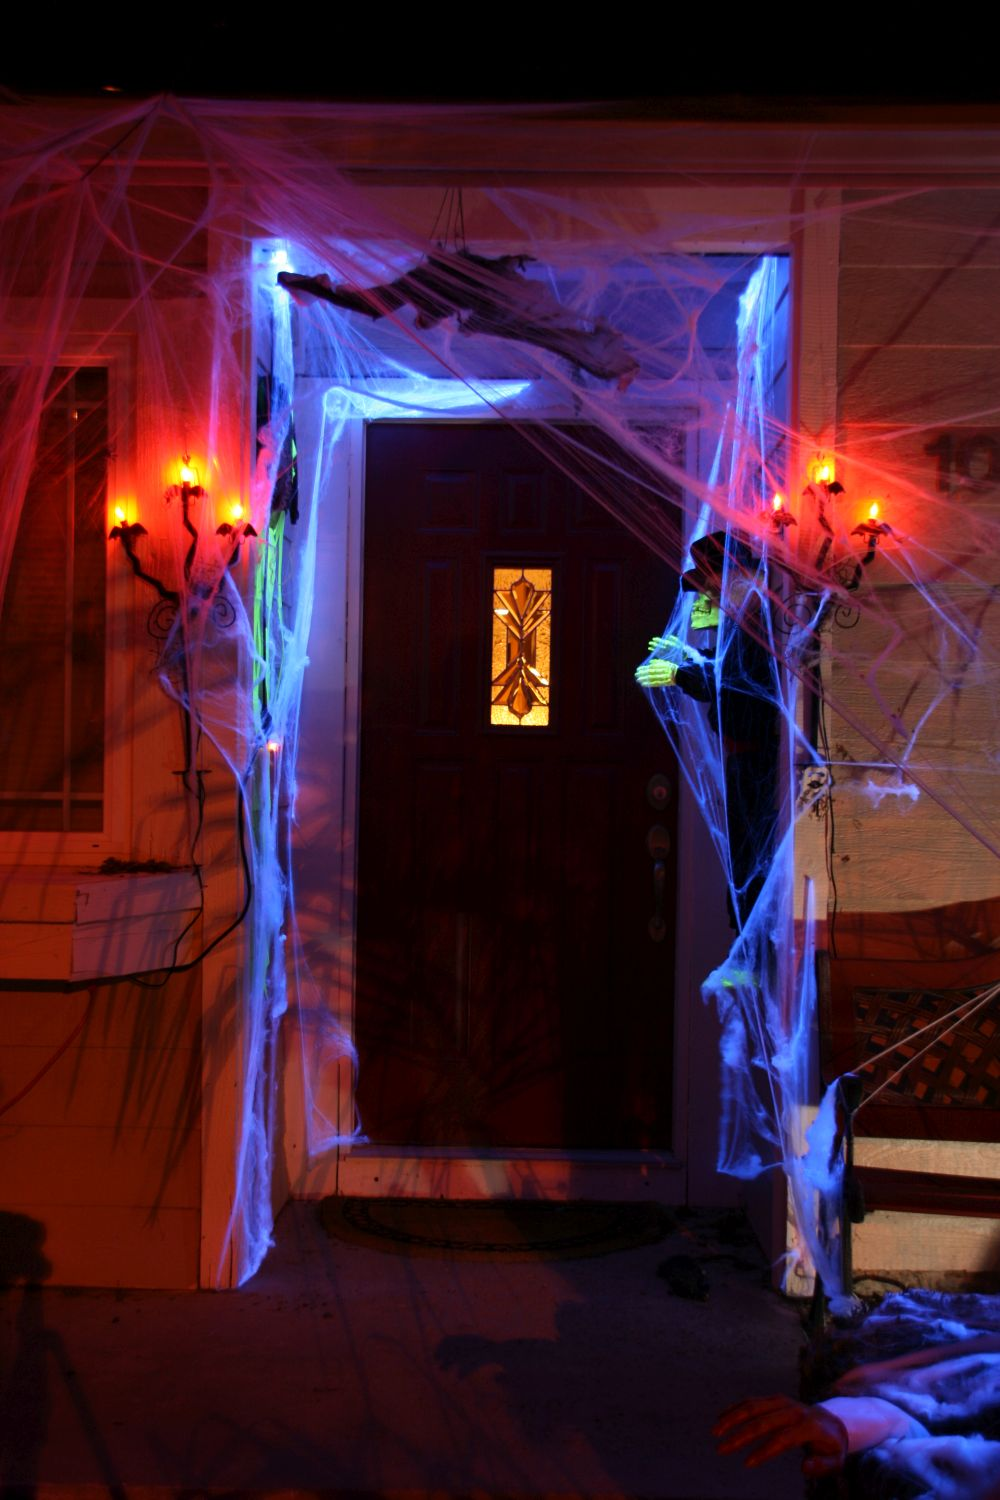 Spooky Scary and Fun Halloween Door Decoration Ideas